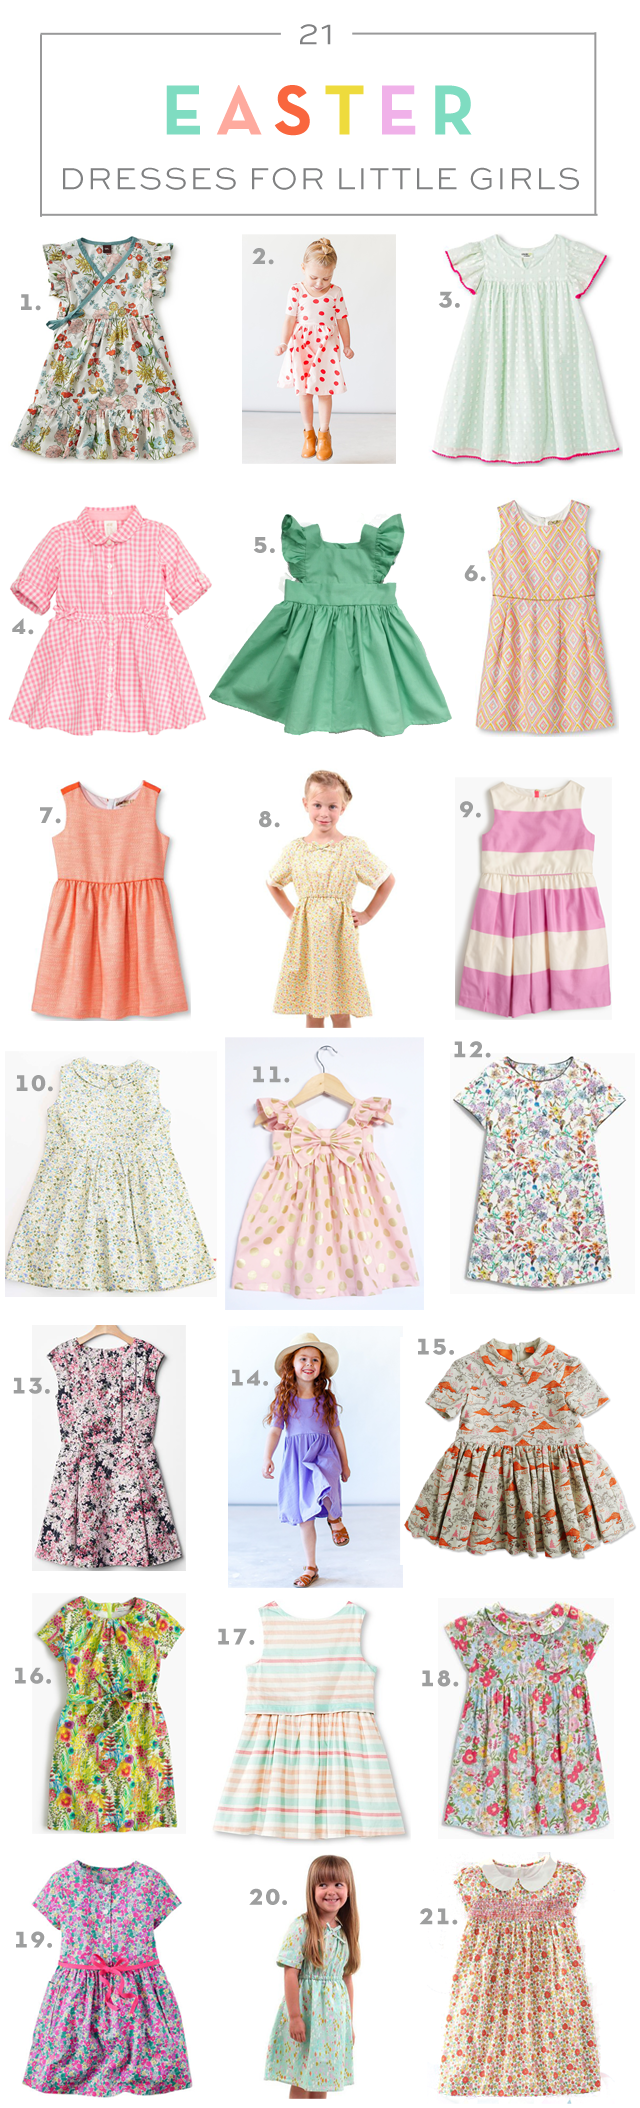 21 Easter Dresses for Little Girls // armelleblog.com